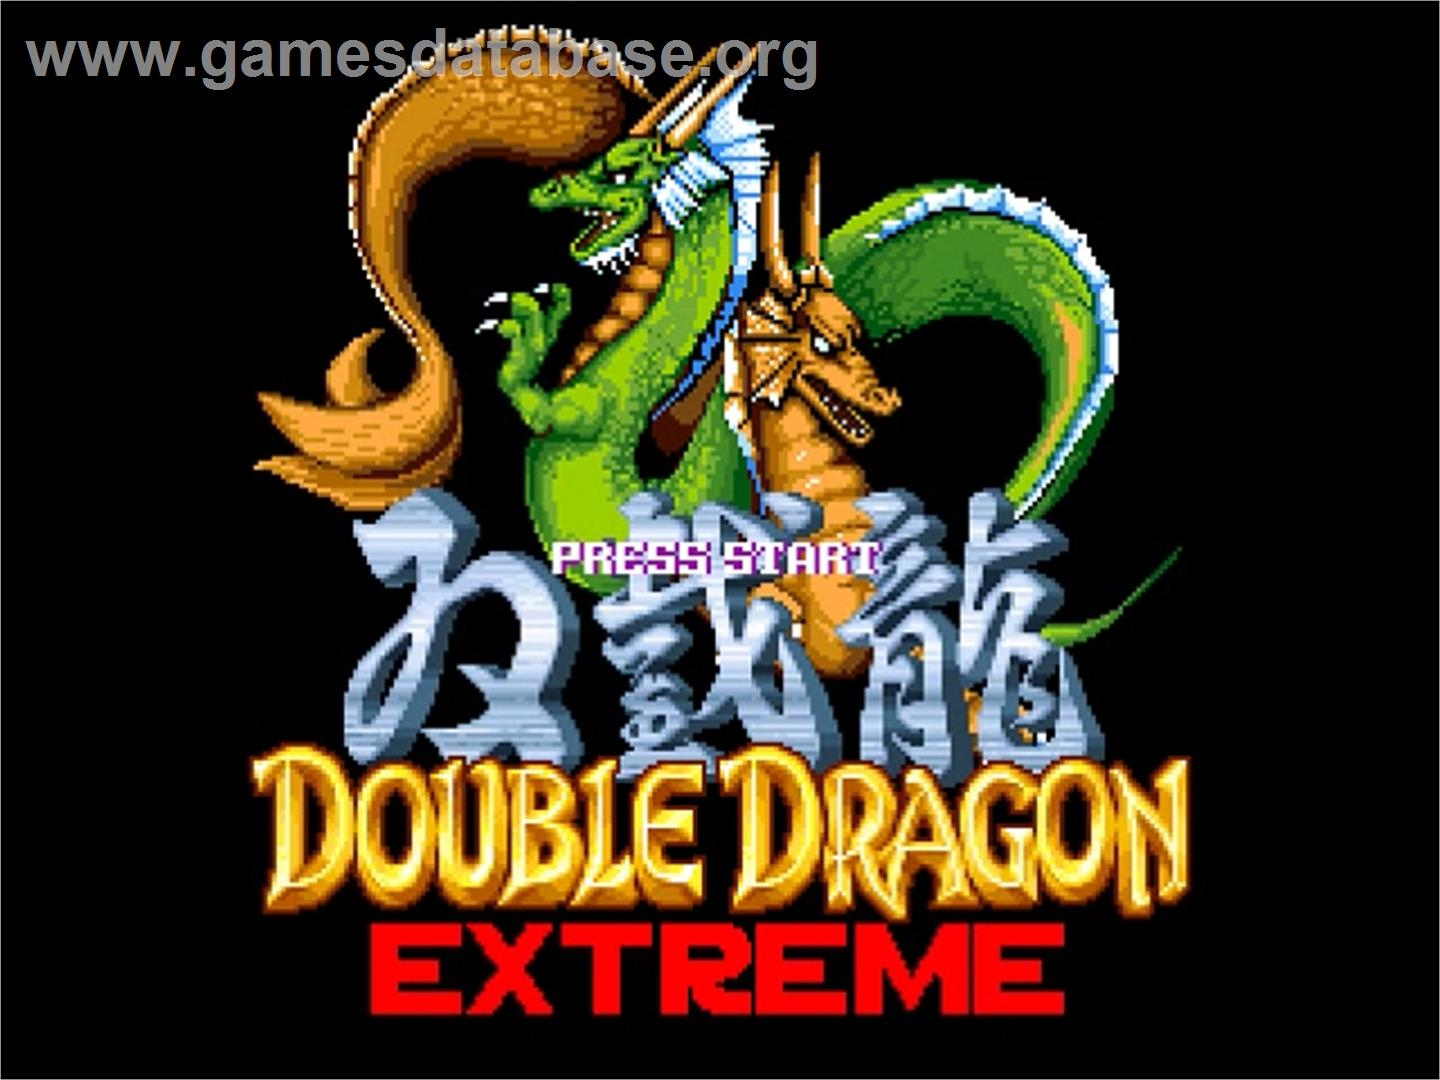 Double Dragon Extreme - OpenBOR - Artwork - Title Screen